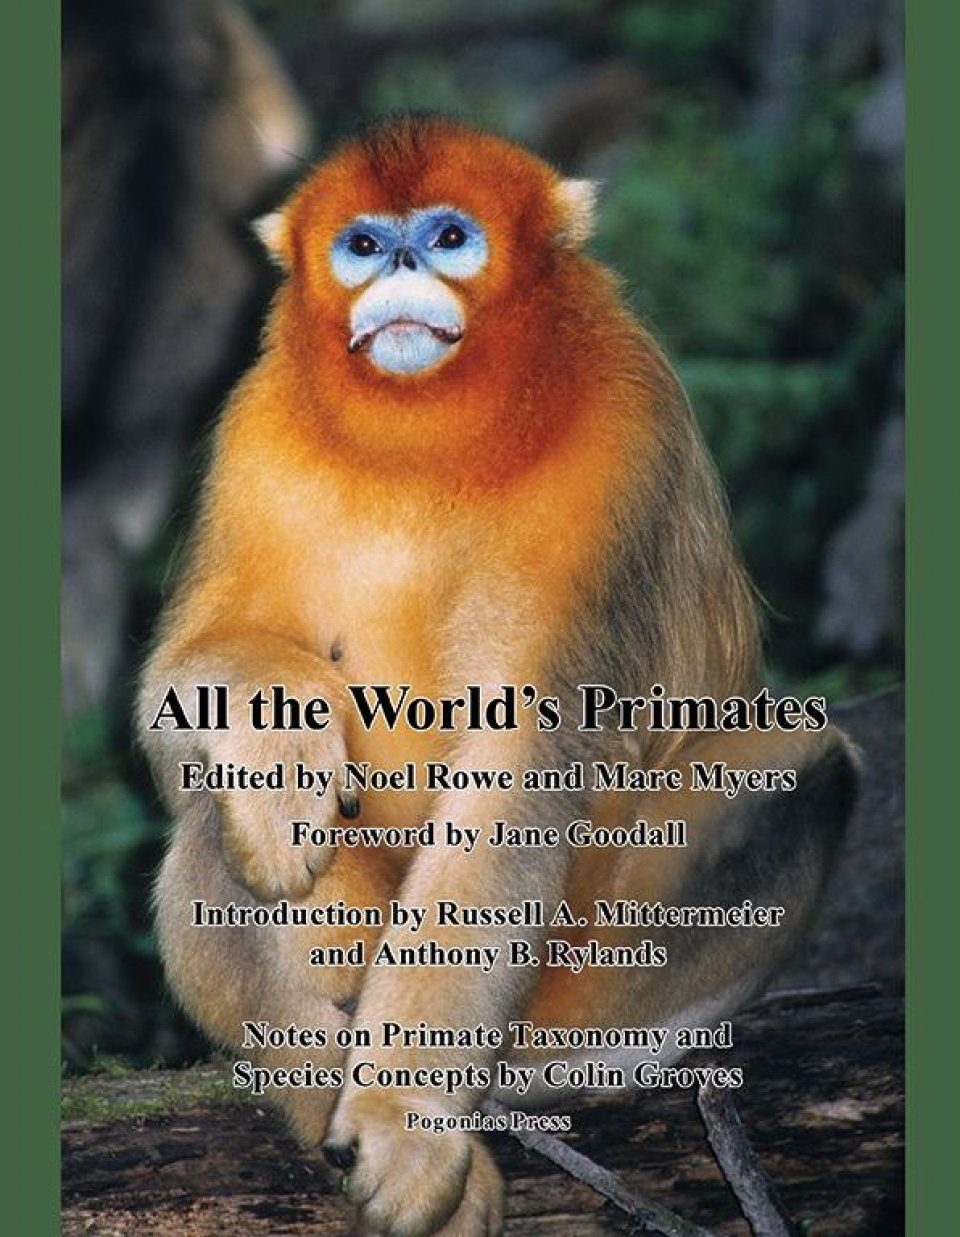 All the World's Primates